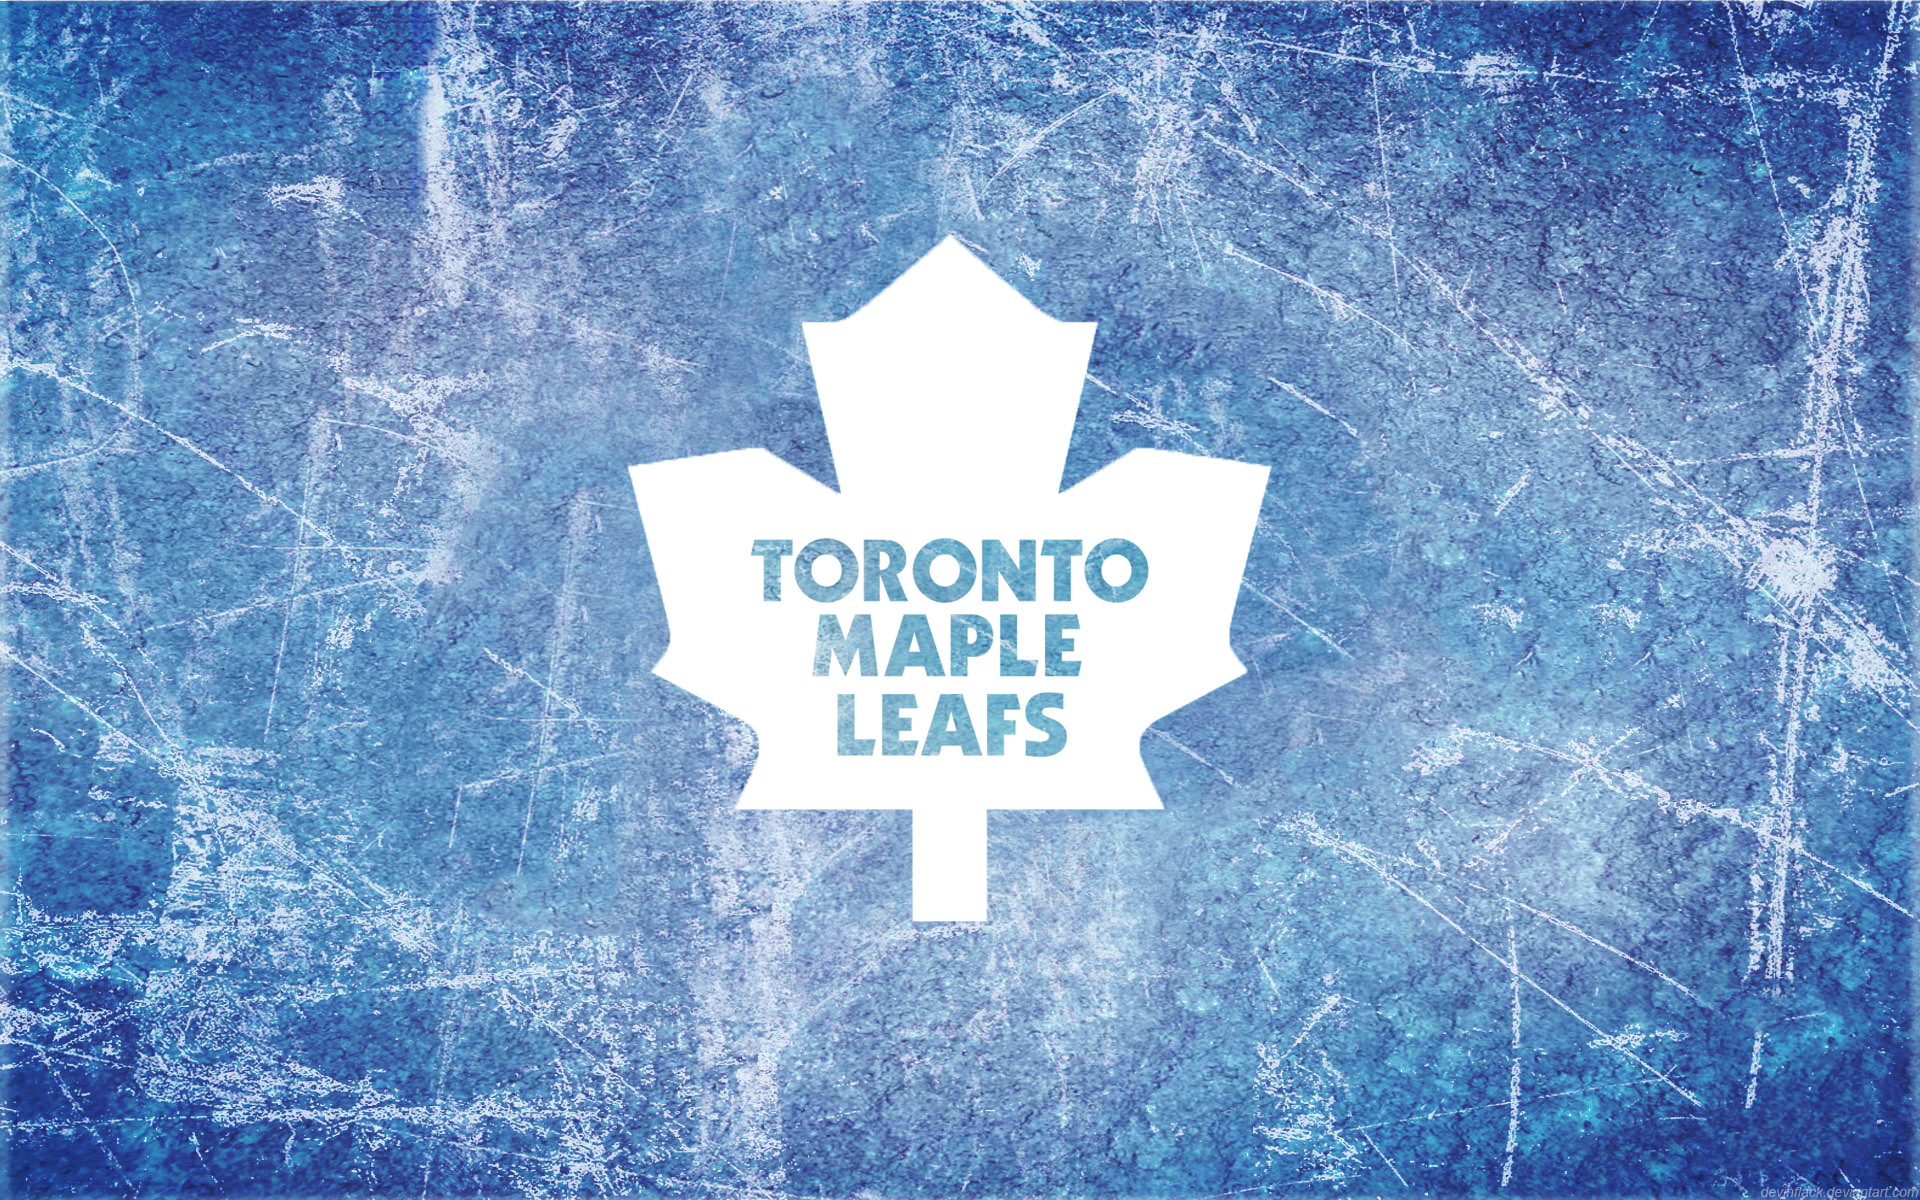 Toronto Maple Leafs wallpapers Toronto Maple Leafs background   Page 1920x1200